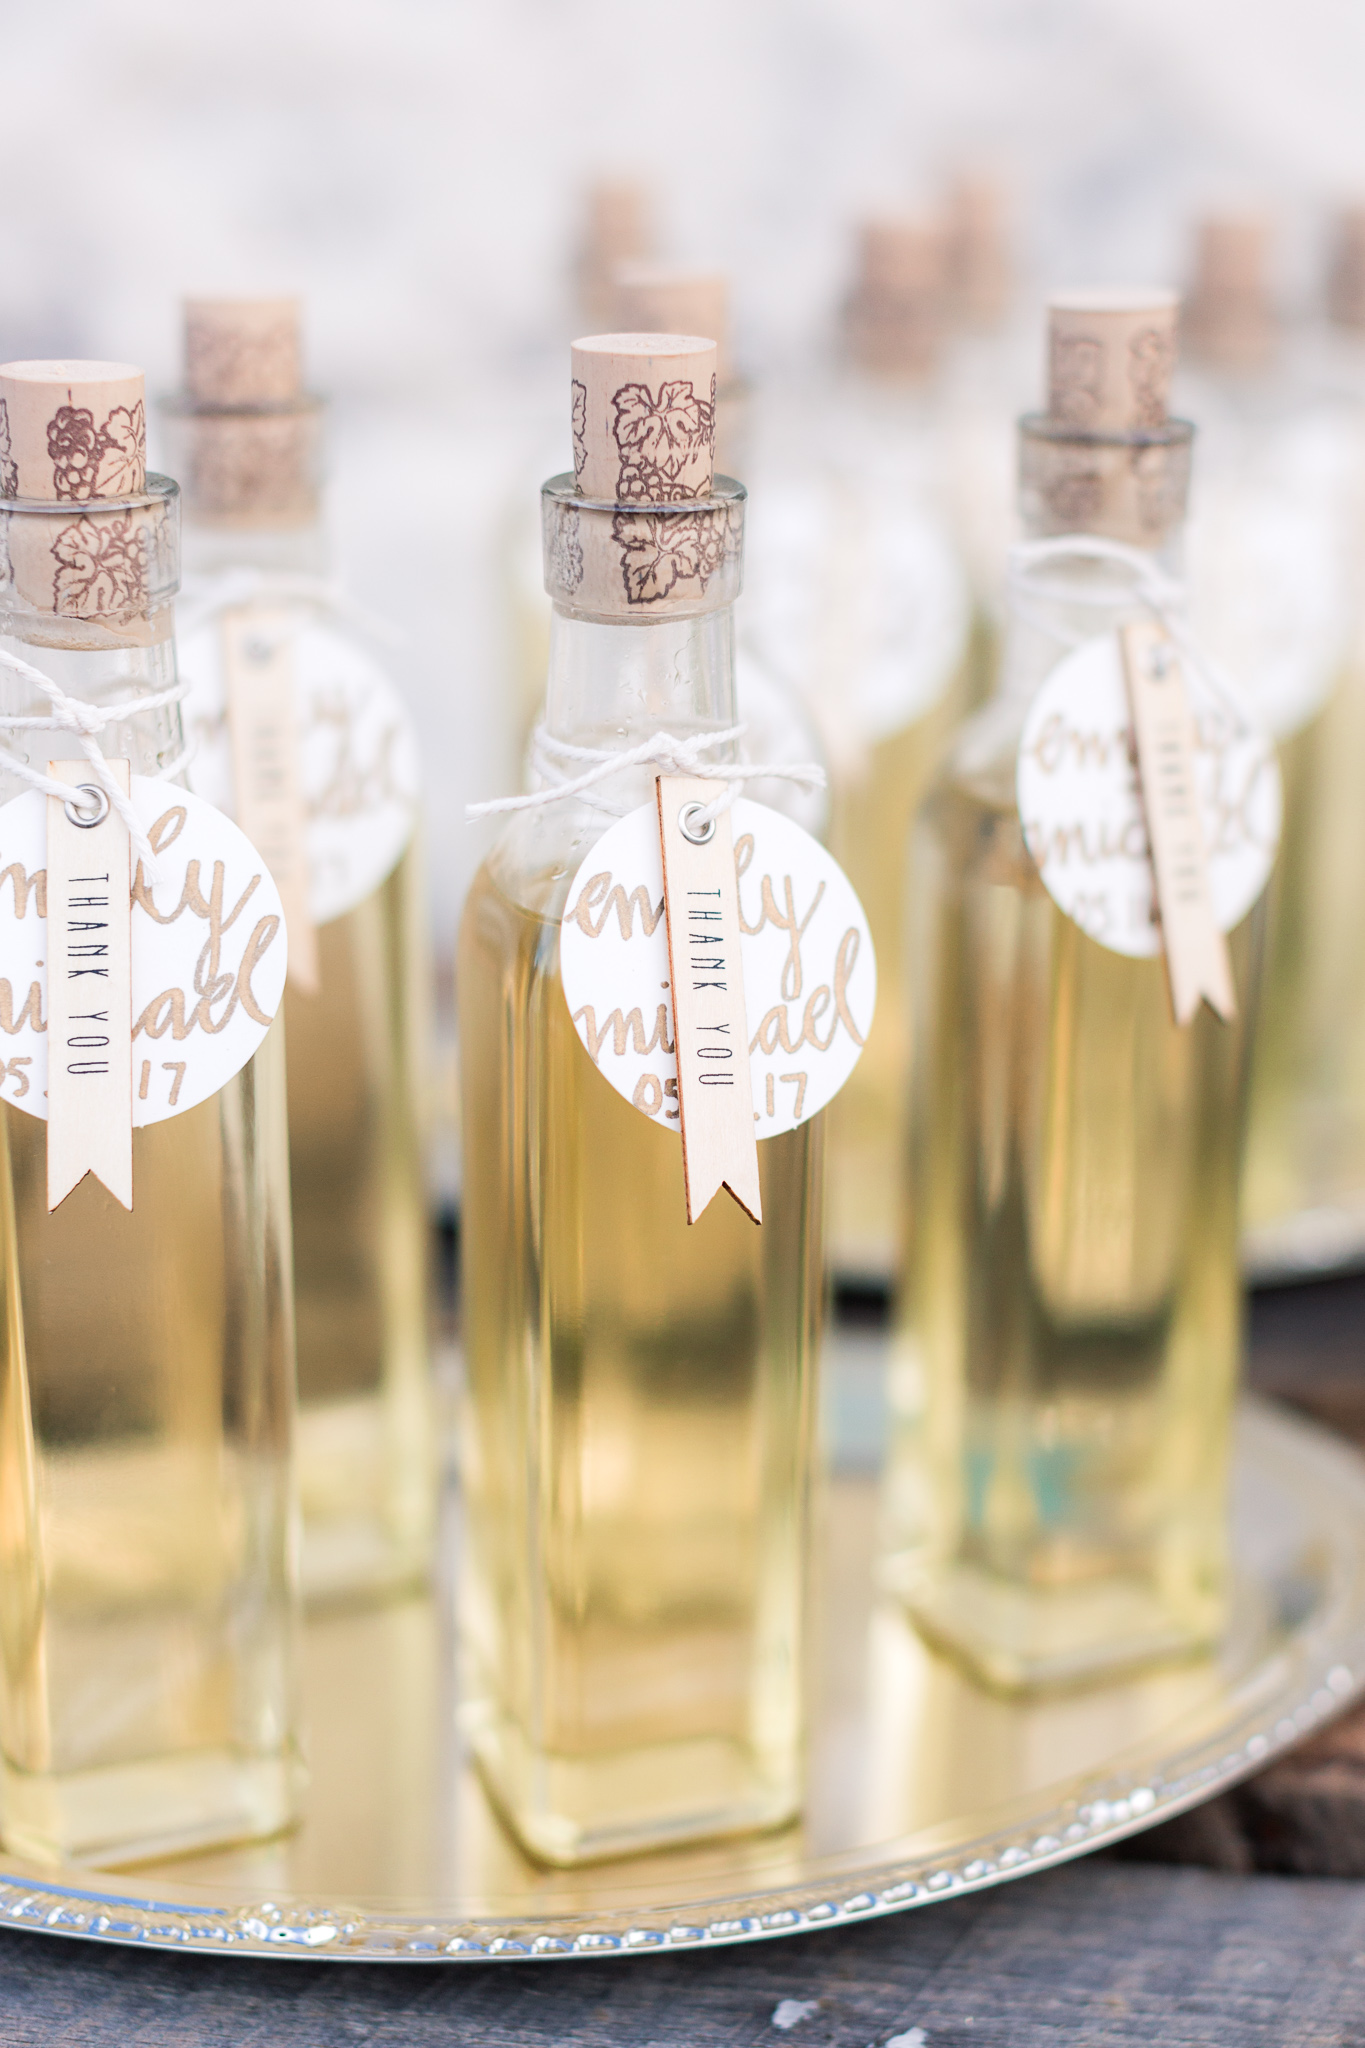 olive oil wedding favors - photo by B.Matthews Creative https://ruffledblog.com/organic-italian-inspired-wedding-ideas